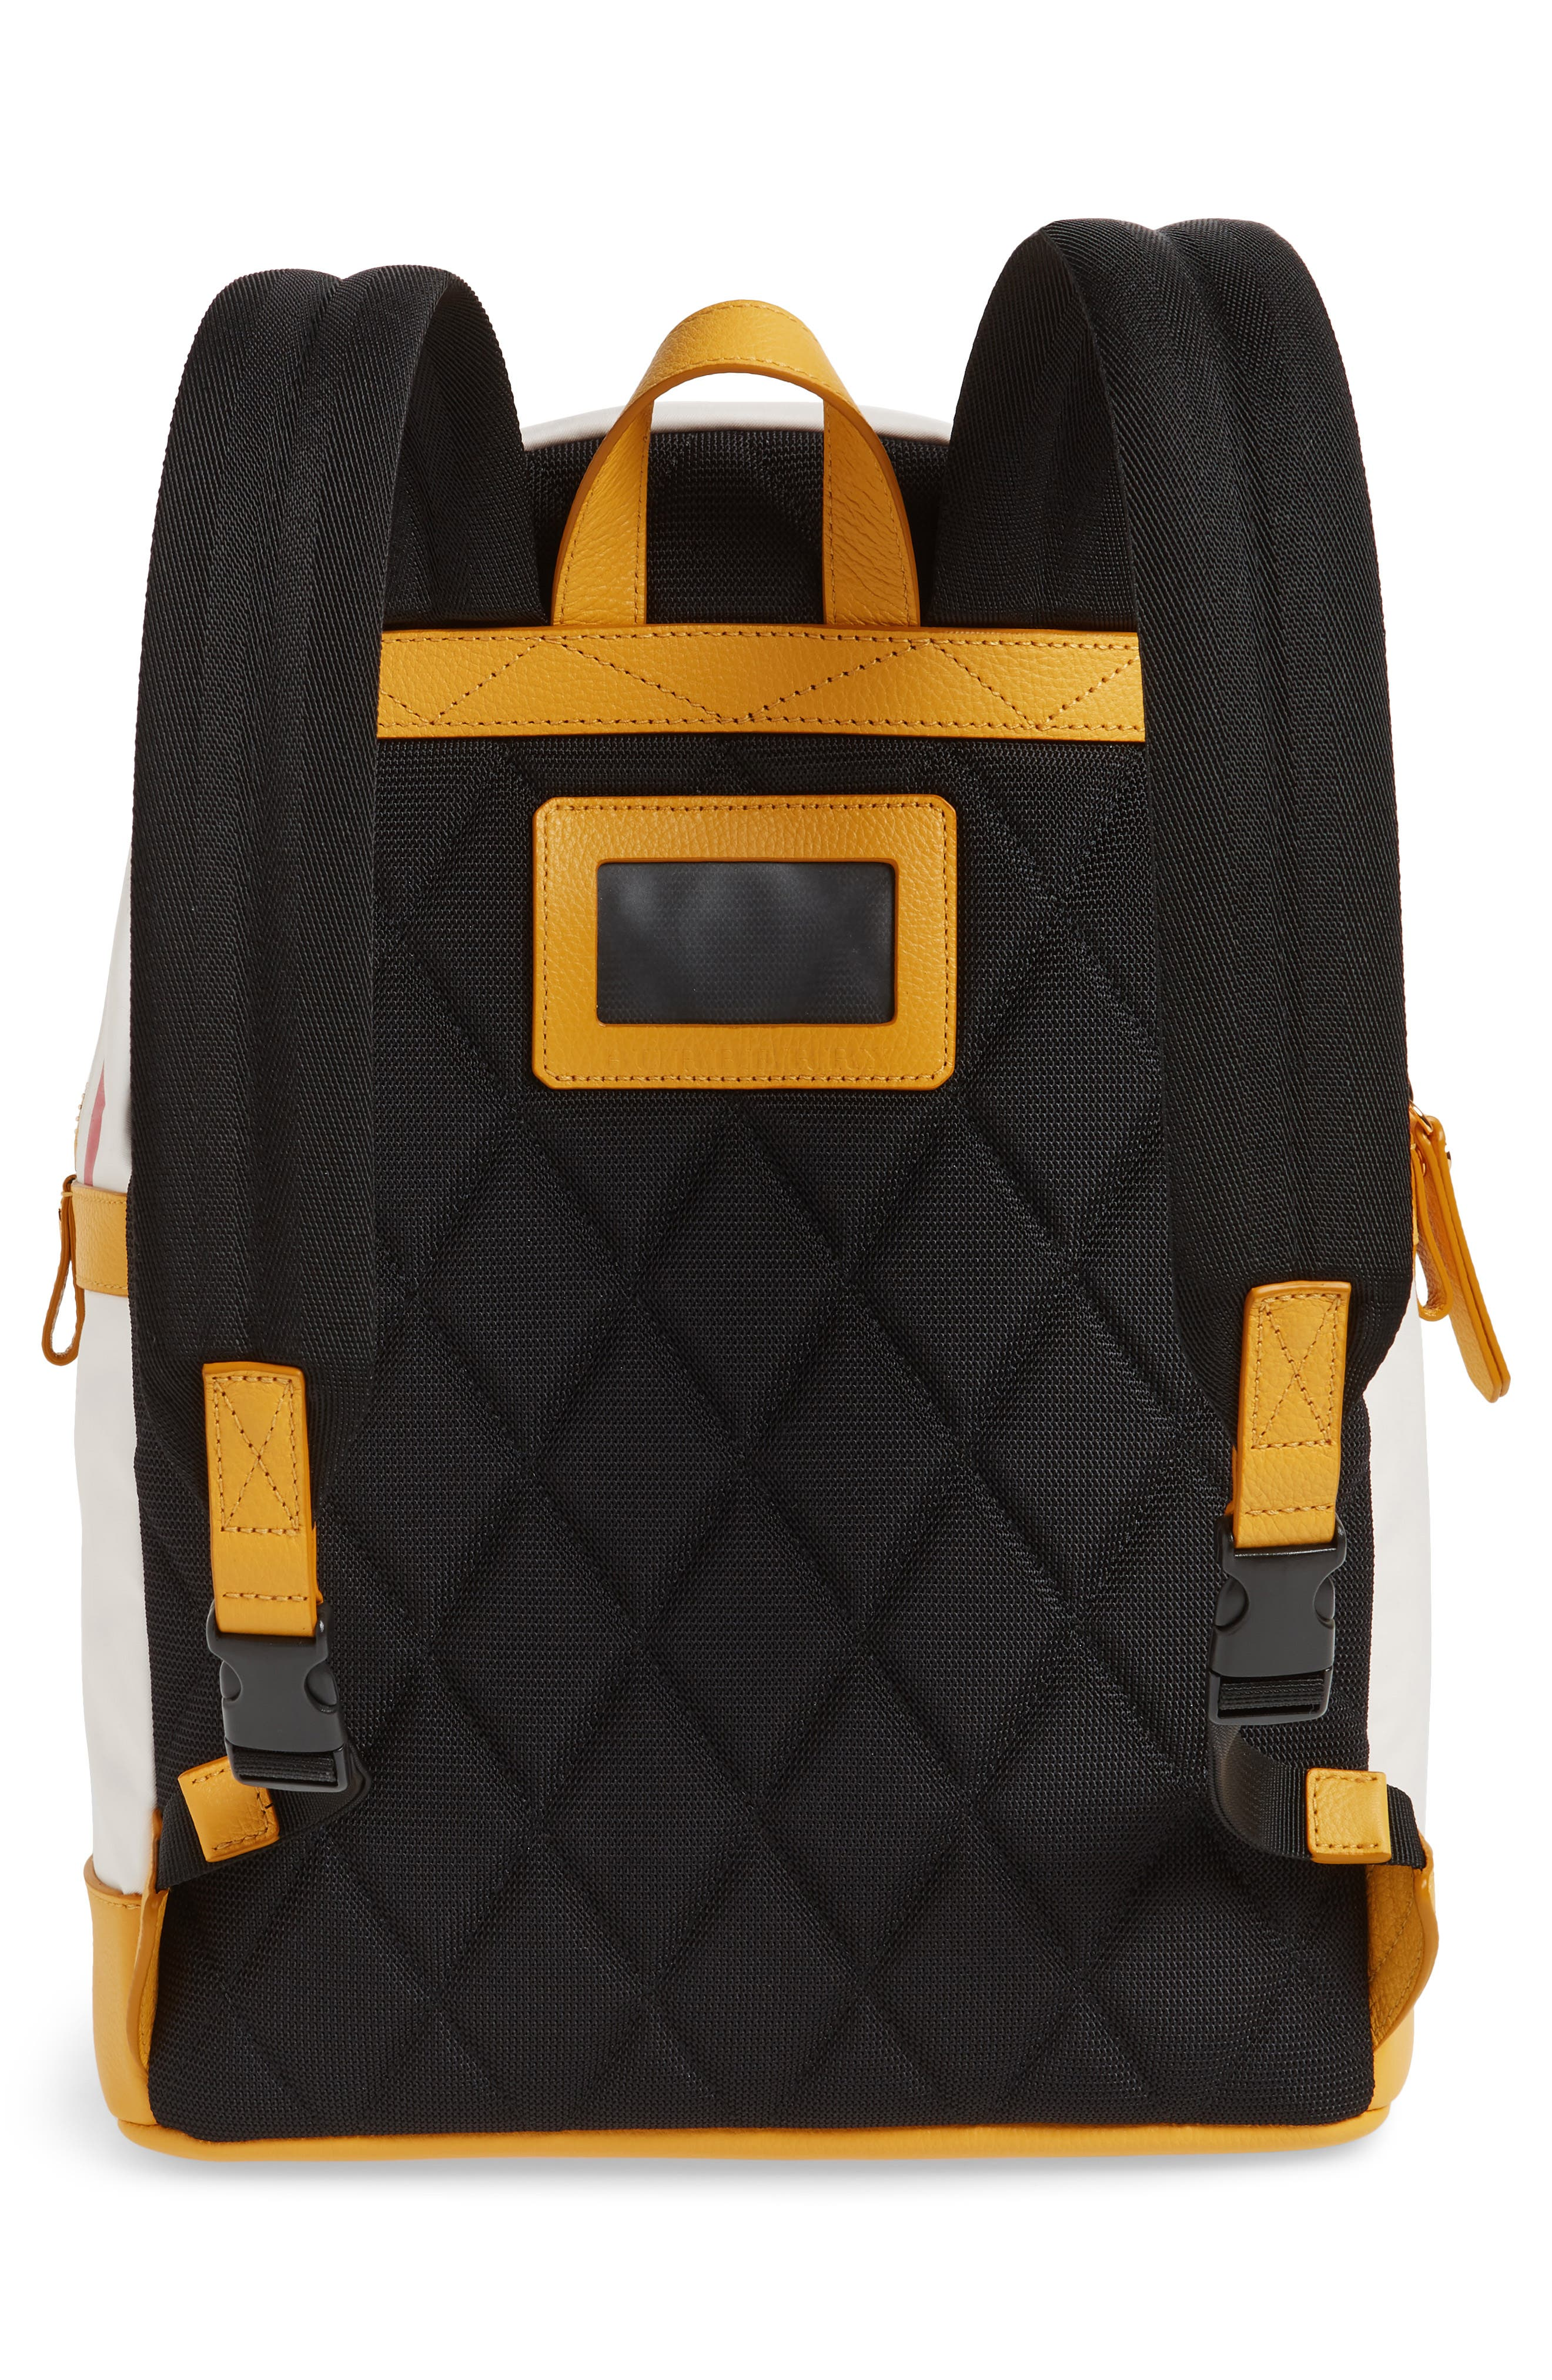 Burberrry Graphic Canvas Backpack,                             Alternate thumbnail 2, color,                             LARCH YELLOW